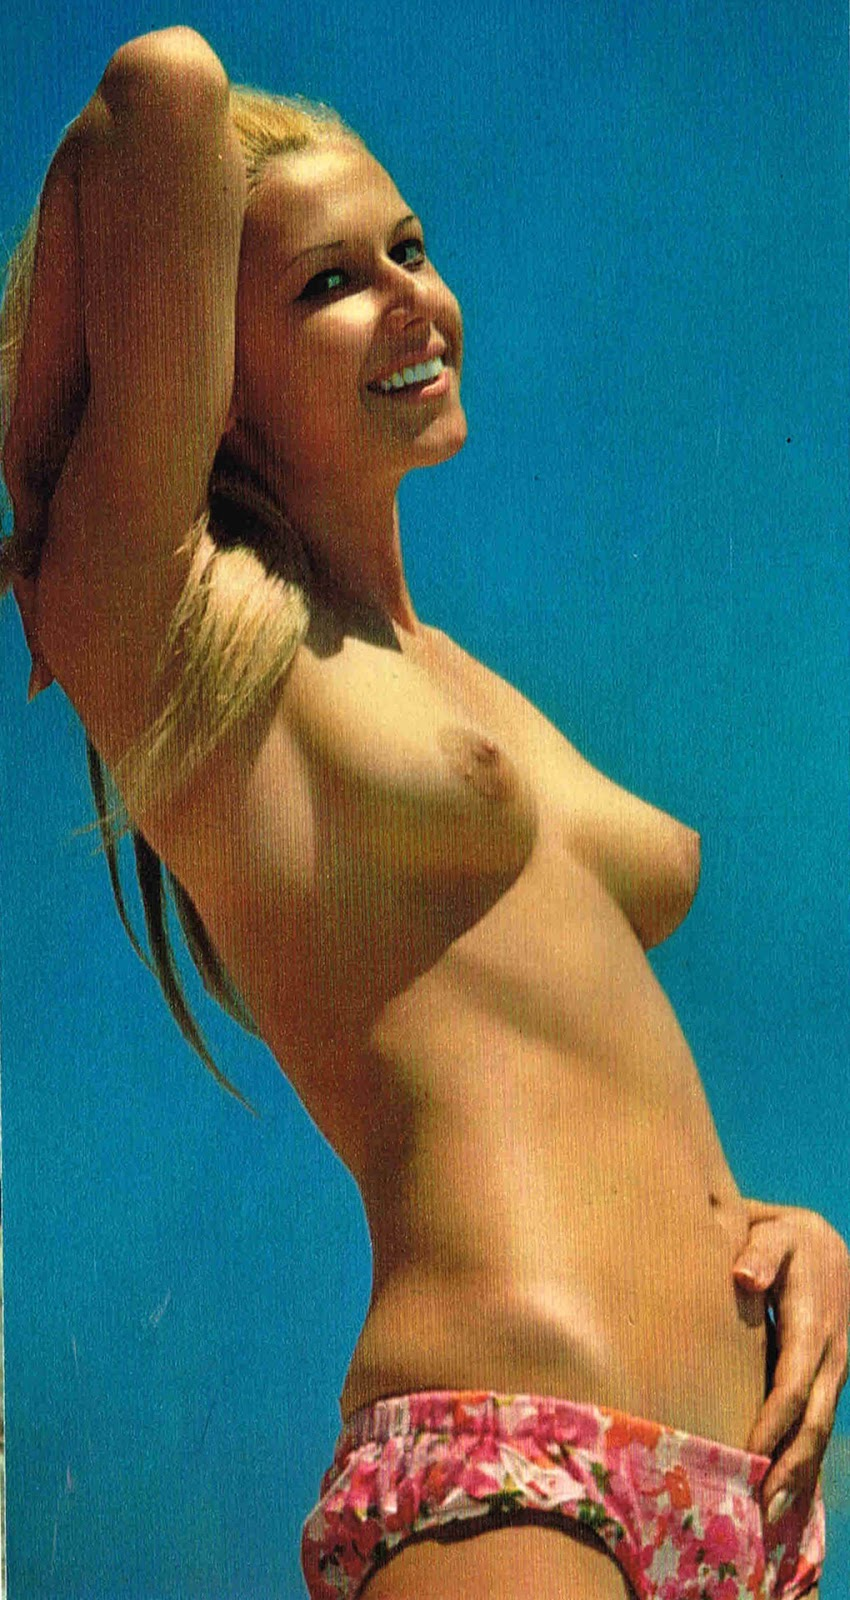 Jan Smithers Nude jan smithers nudes office girls wallpaper | wettreck